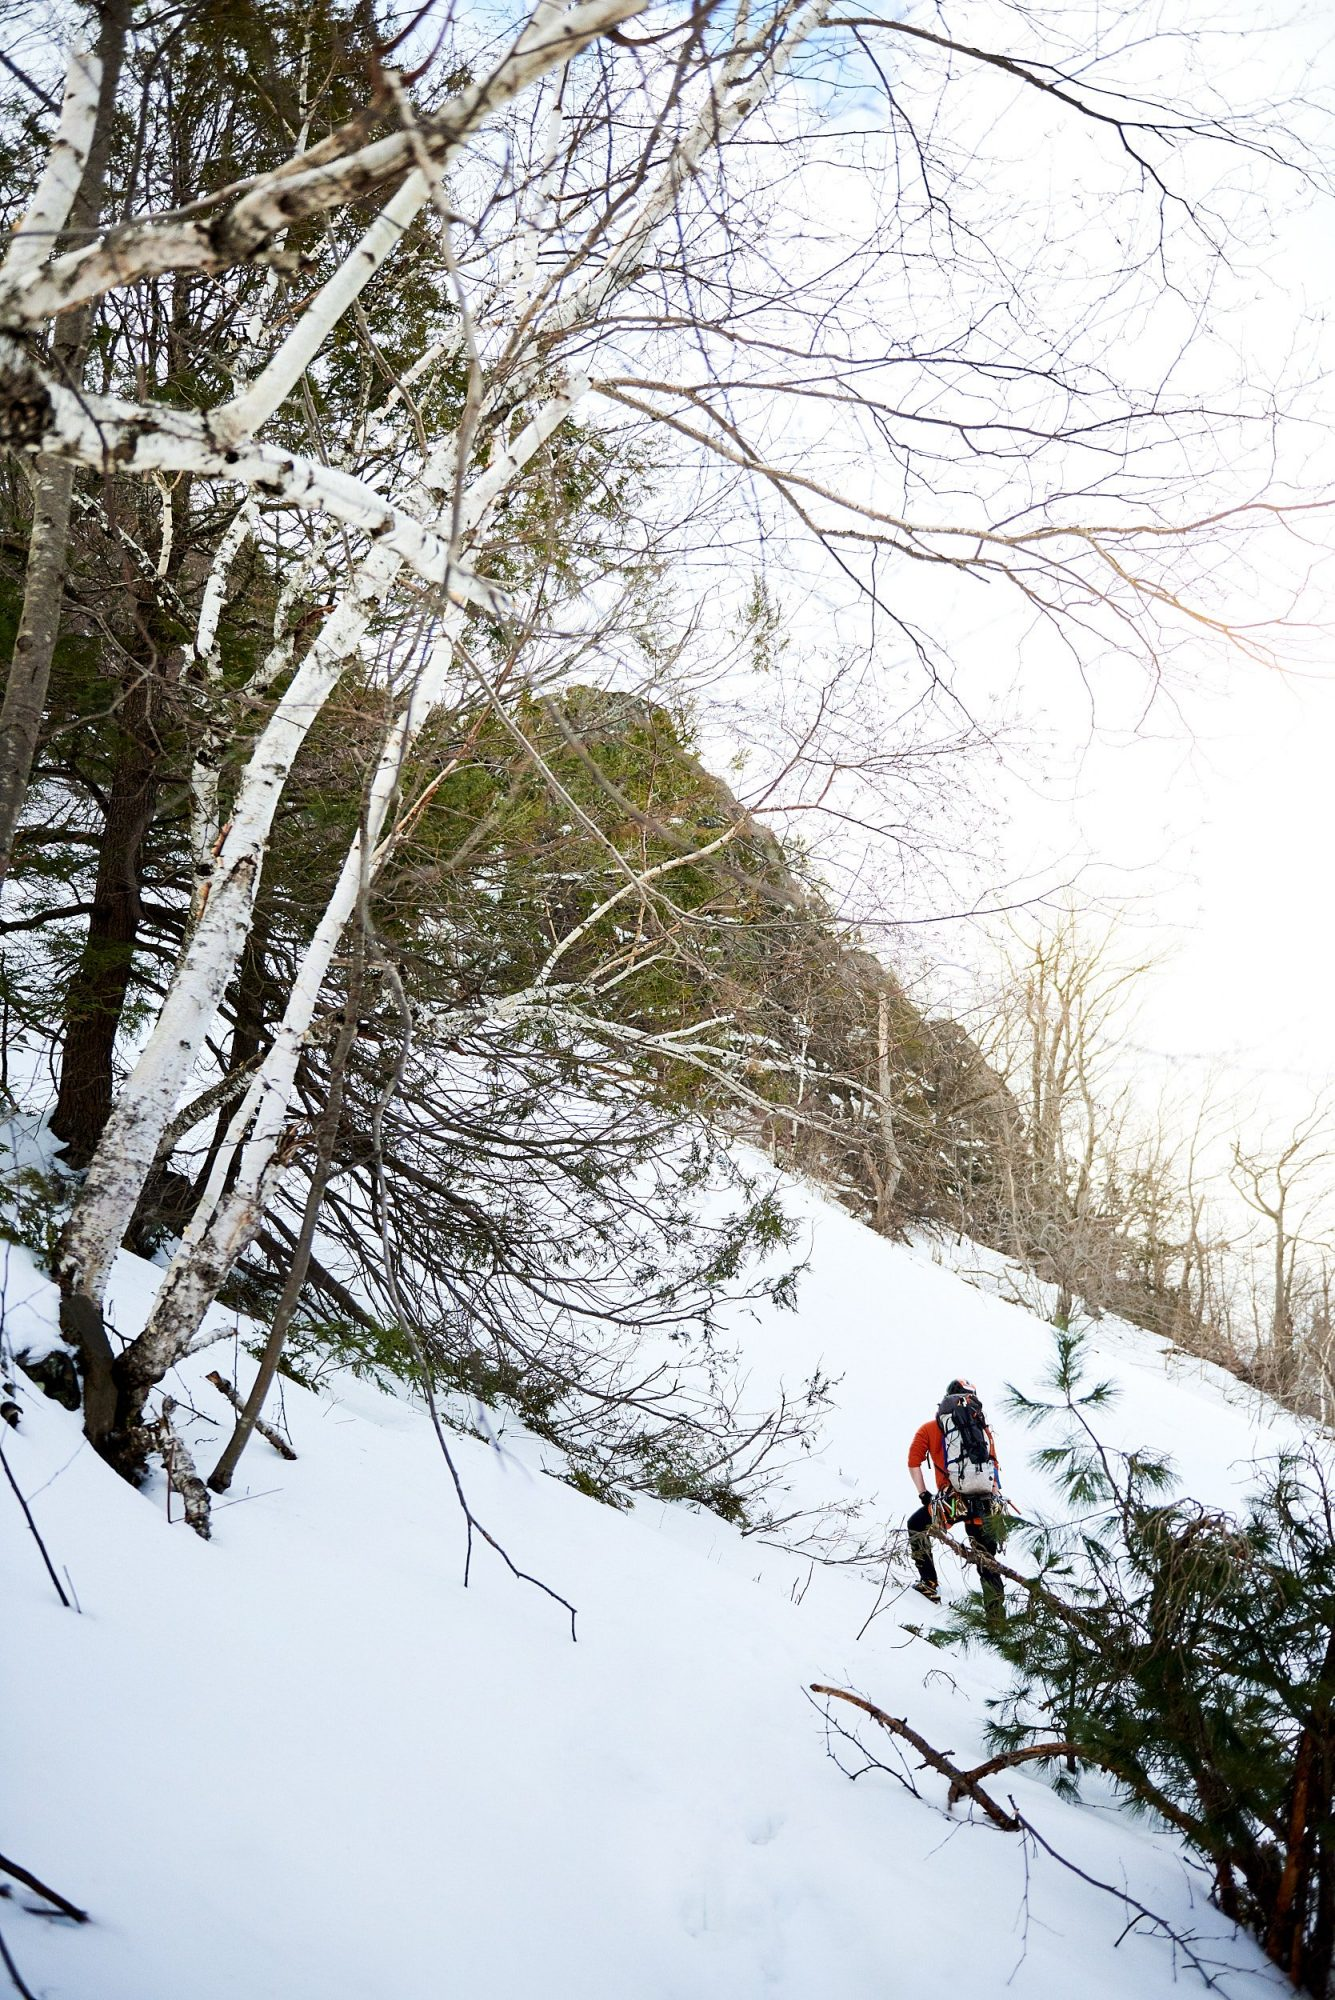 Ice climber checking out the conditions on Mount Tom in Easthampton, Massachusetts